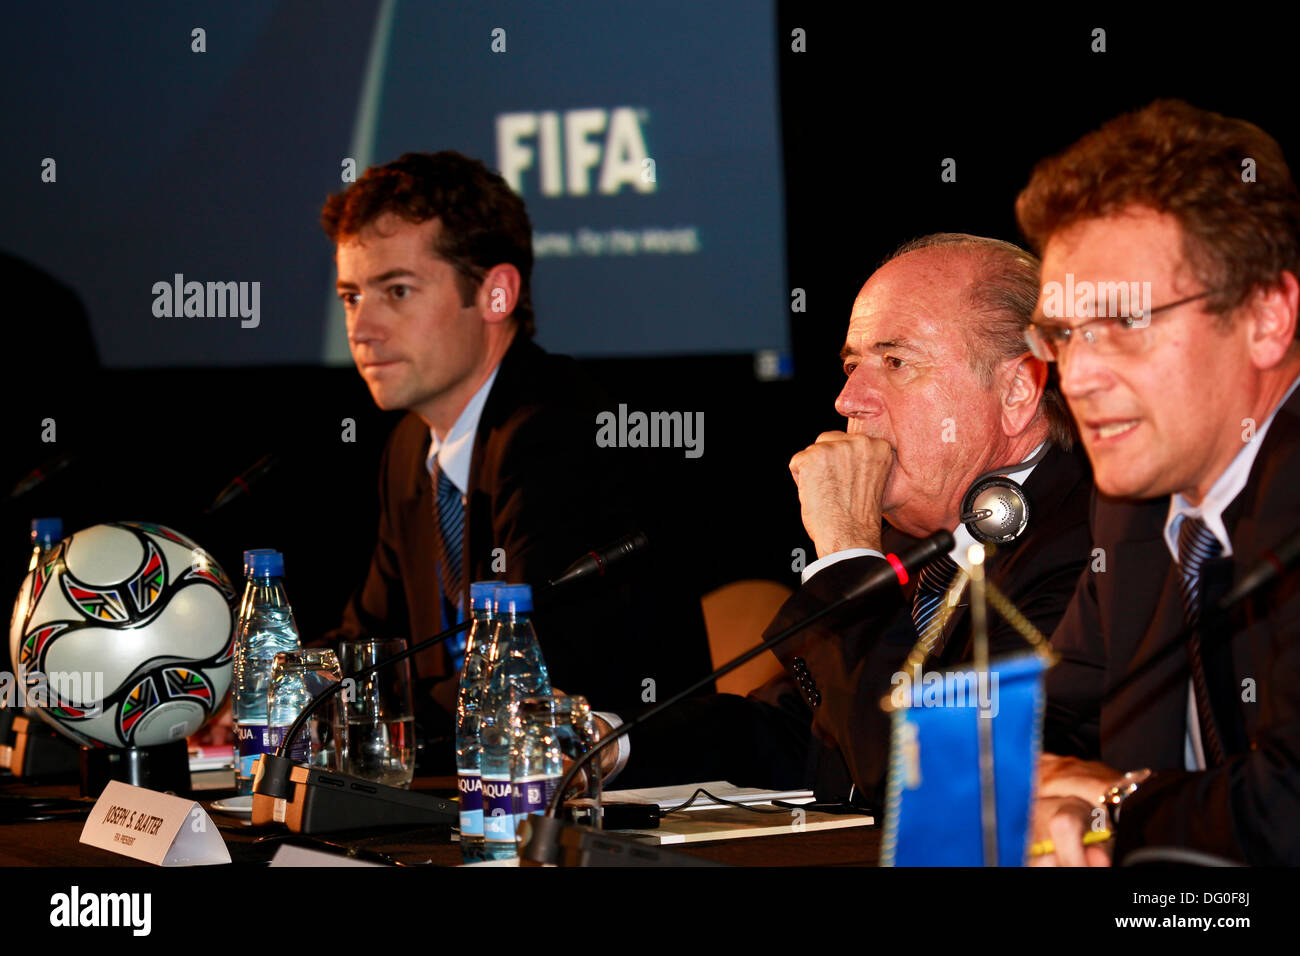 President of FIFA Sep Blatter (centre) during the media briefing on Robben Island at the FIFA Executive Meeting. - Stock Image